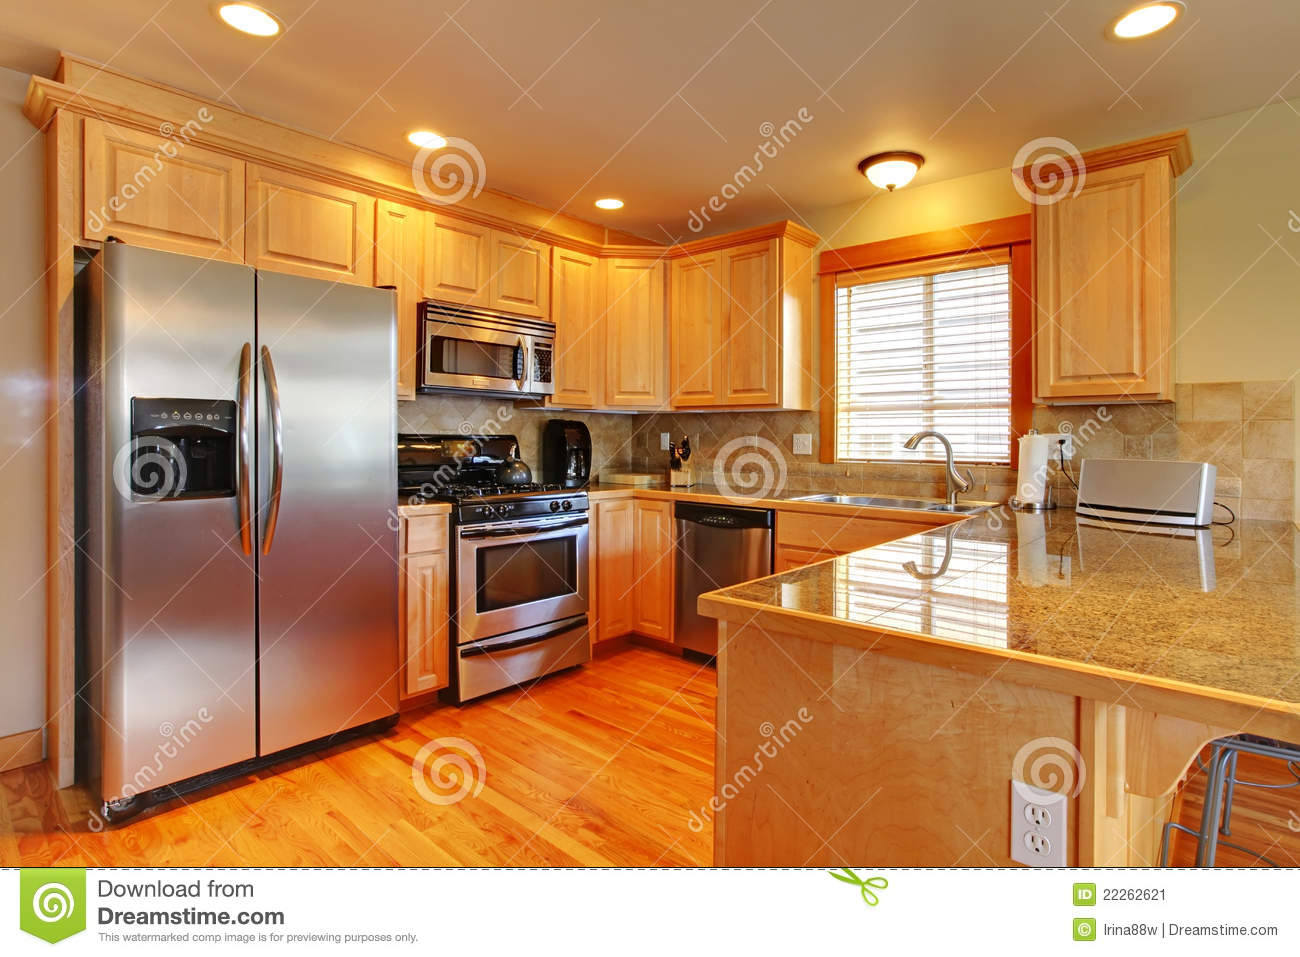 renew kitchen cabinets drop in grills for outdoor kitchens golden maple beautiful kitchen. stock image ...